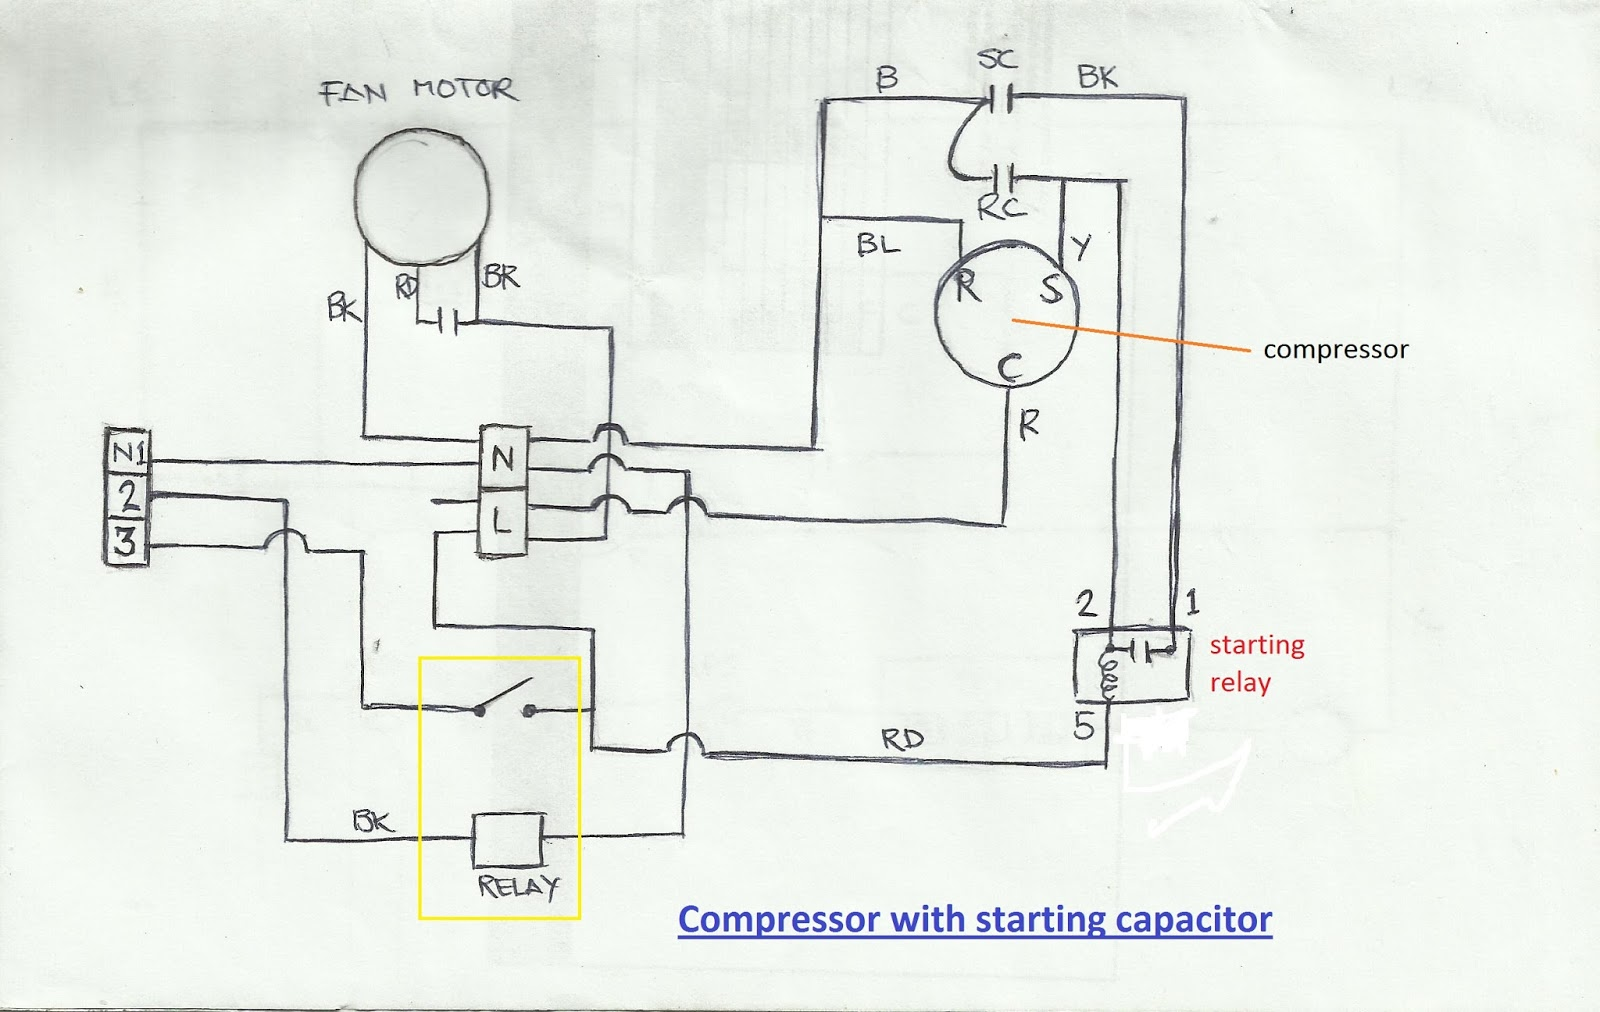 Kirby Compressor Wiring Diagram 31 Images Mk4 Golf Air Conditioner Refrigeration And Conditioning Repair Of